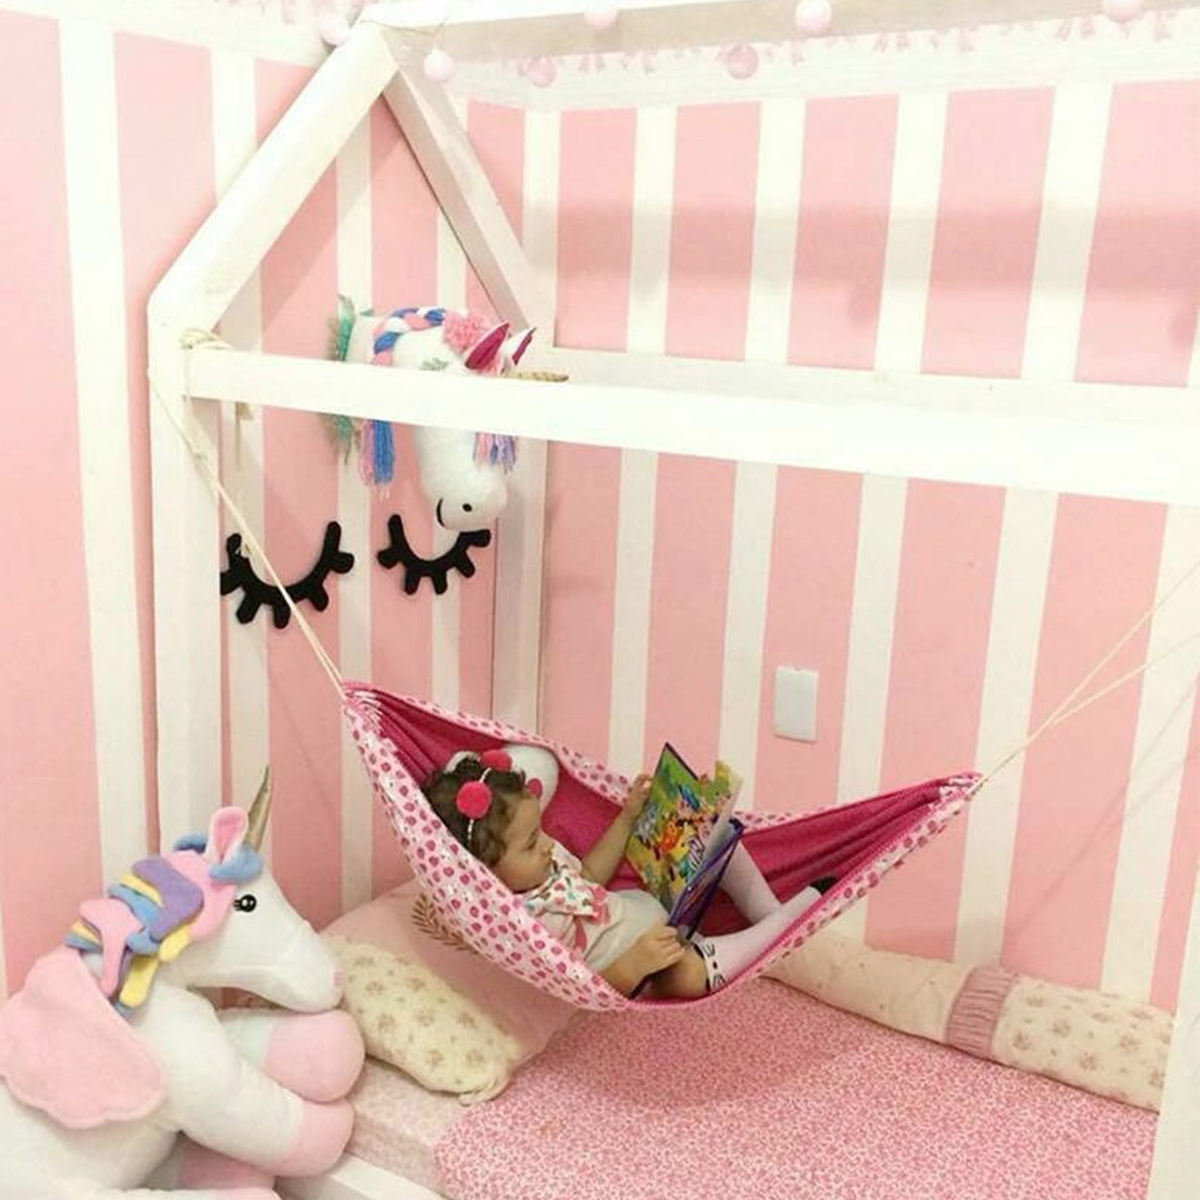 2018 Child Kids Baby Hammock Crib Hanging Sleeping Bed Portable Newborn Indoor Room Hammock Bed Swing Outdoor Hanging Seat Cribs